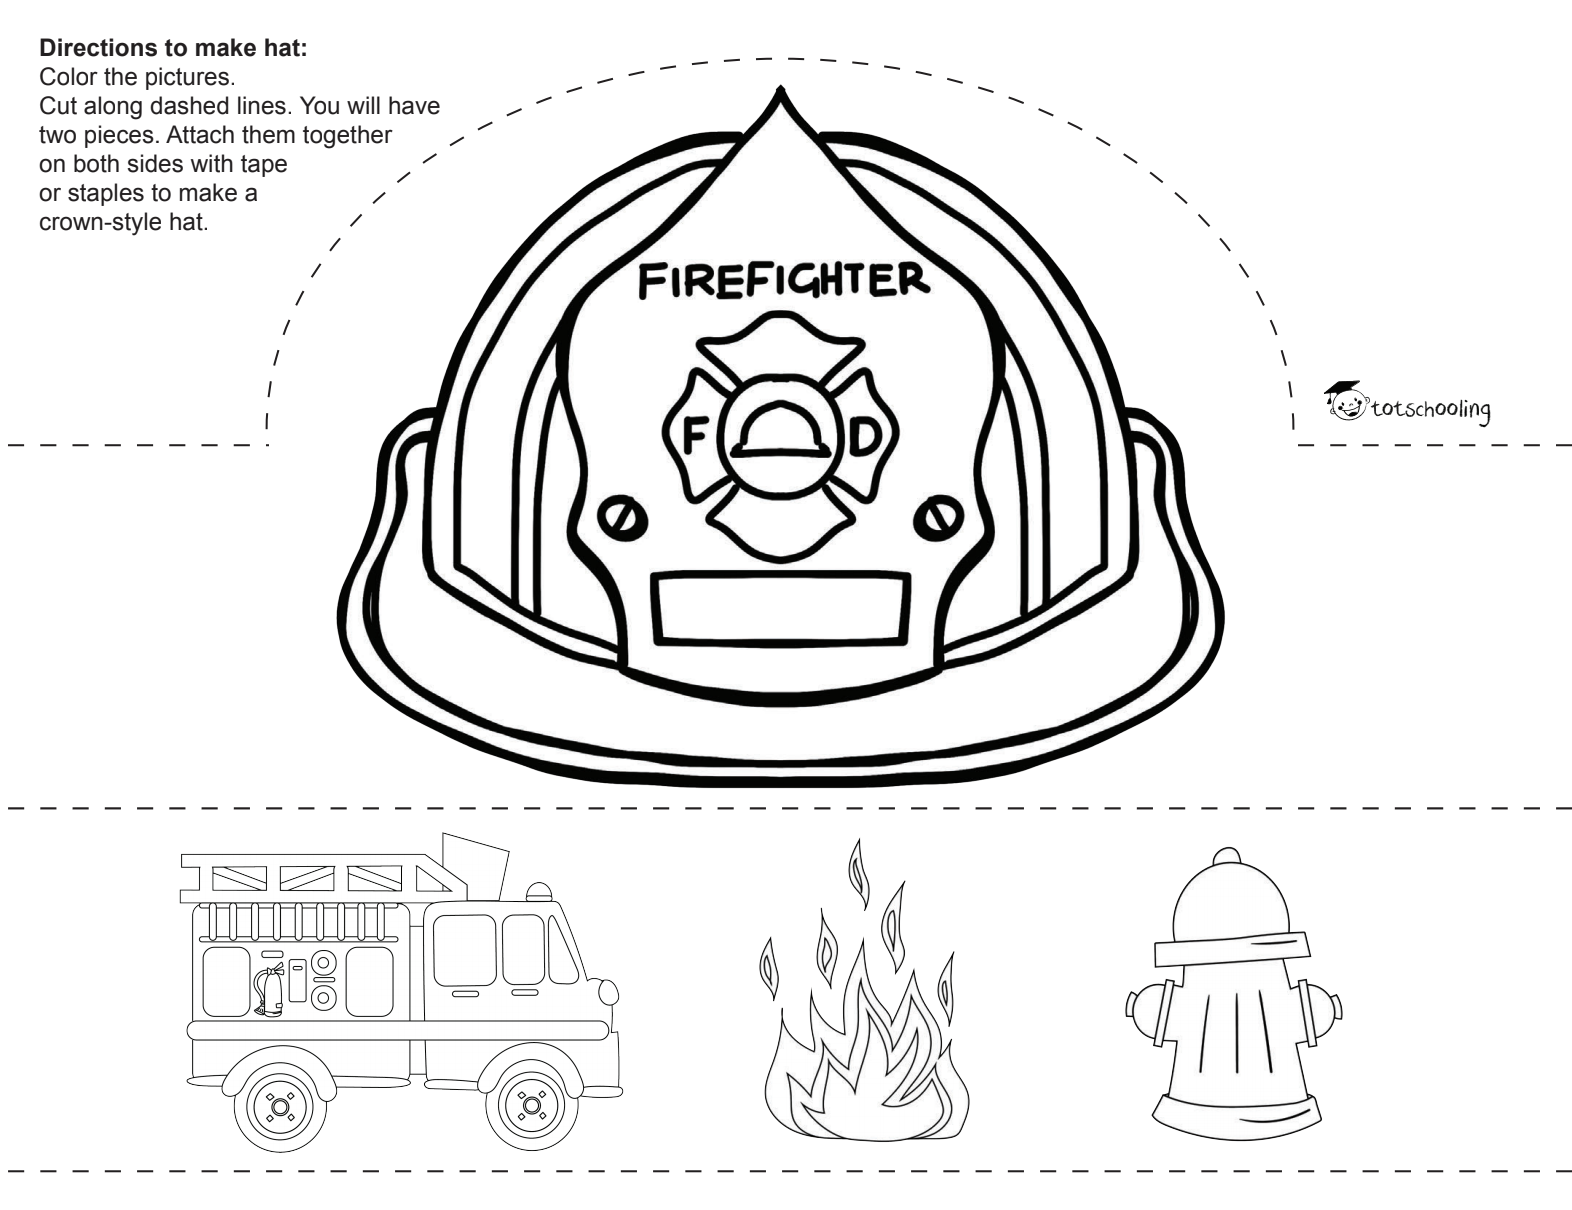 Pin By Lisa On Fire Safety With Images